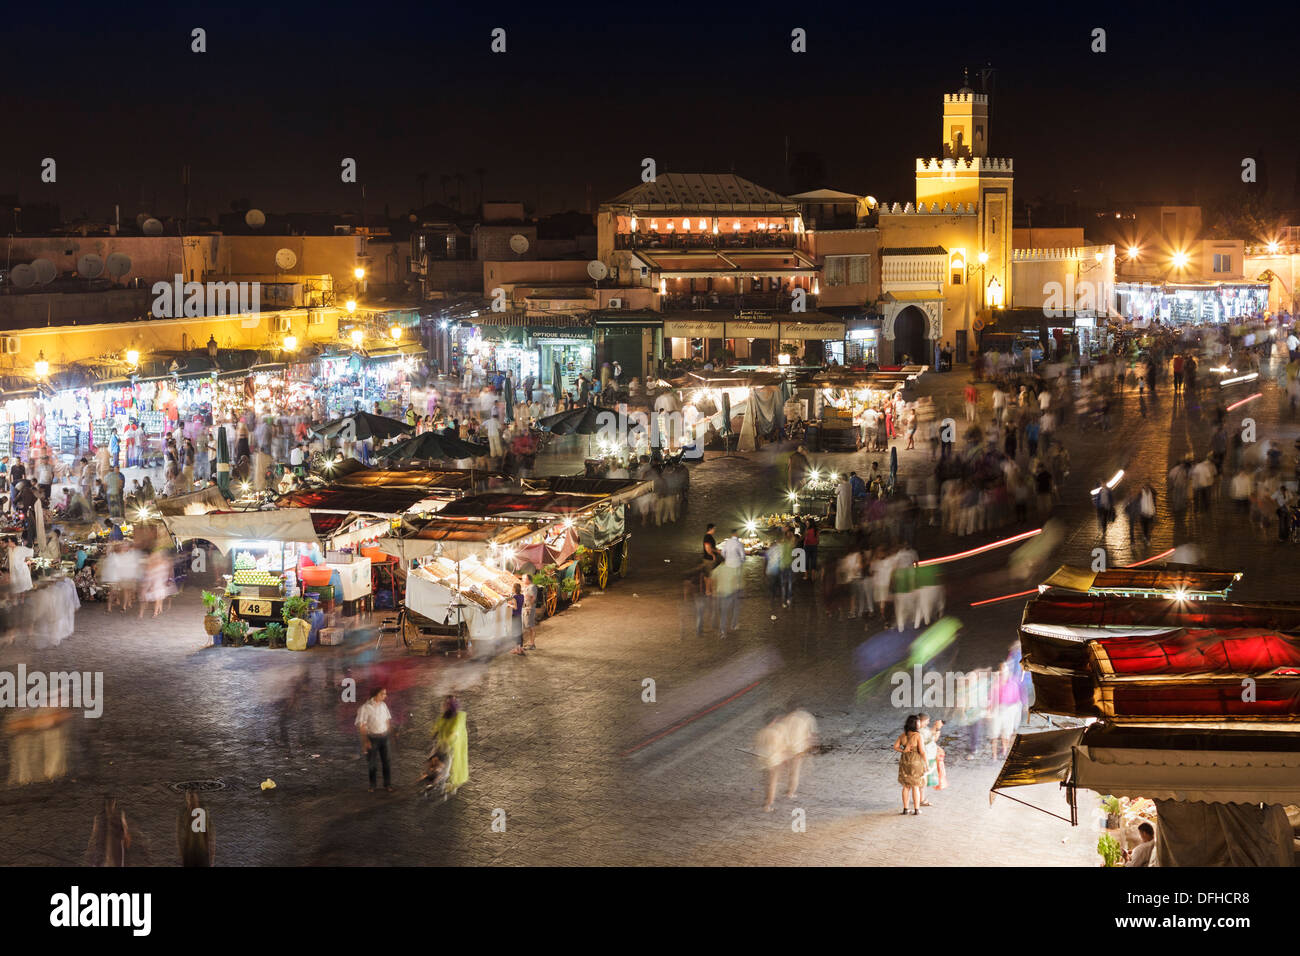 Hustle and bustle at night in Djemaa el Fna square, Marrakesh, Morocco Stock Photo